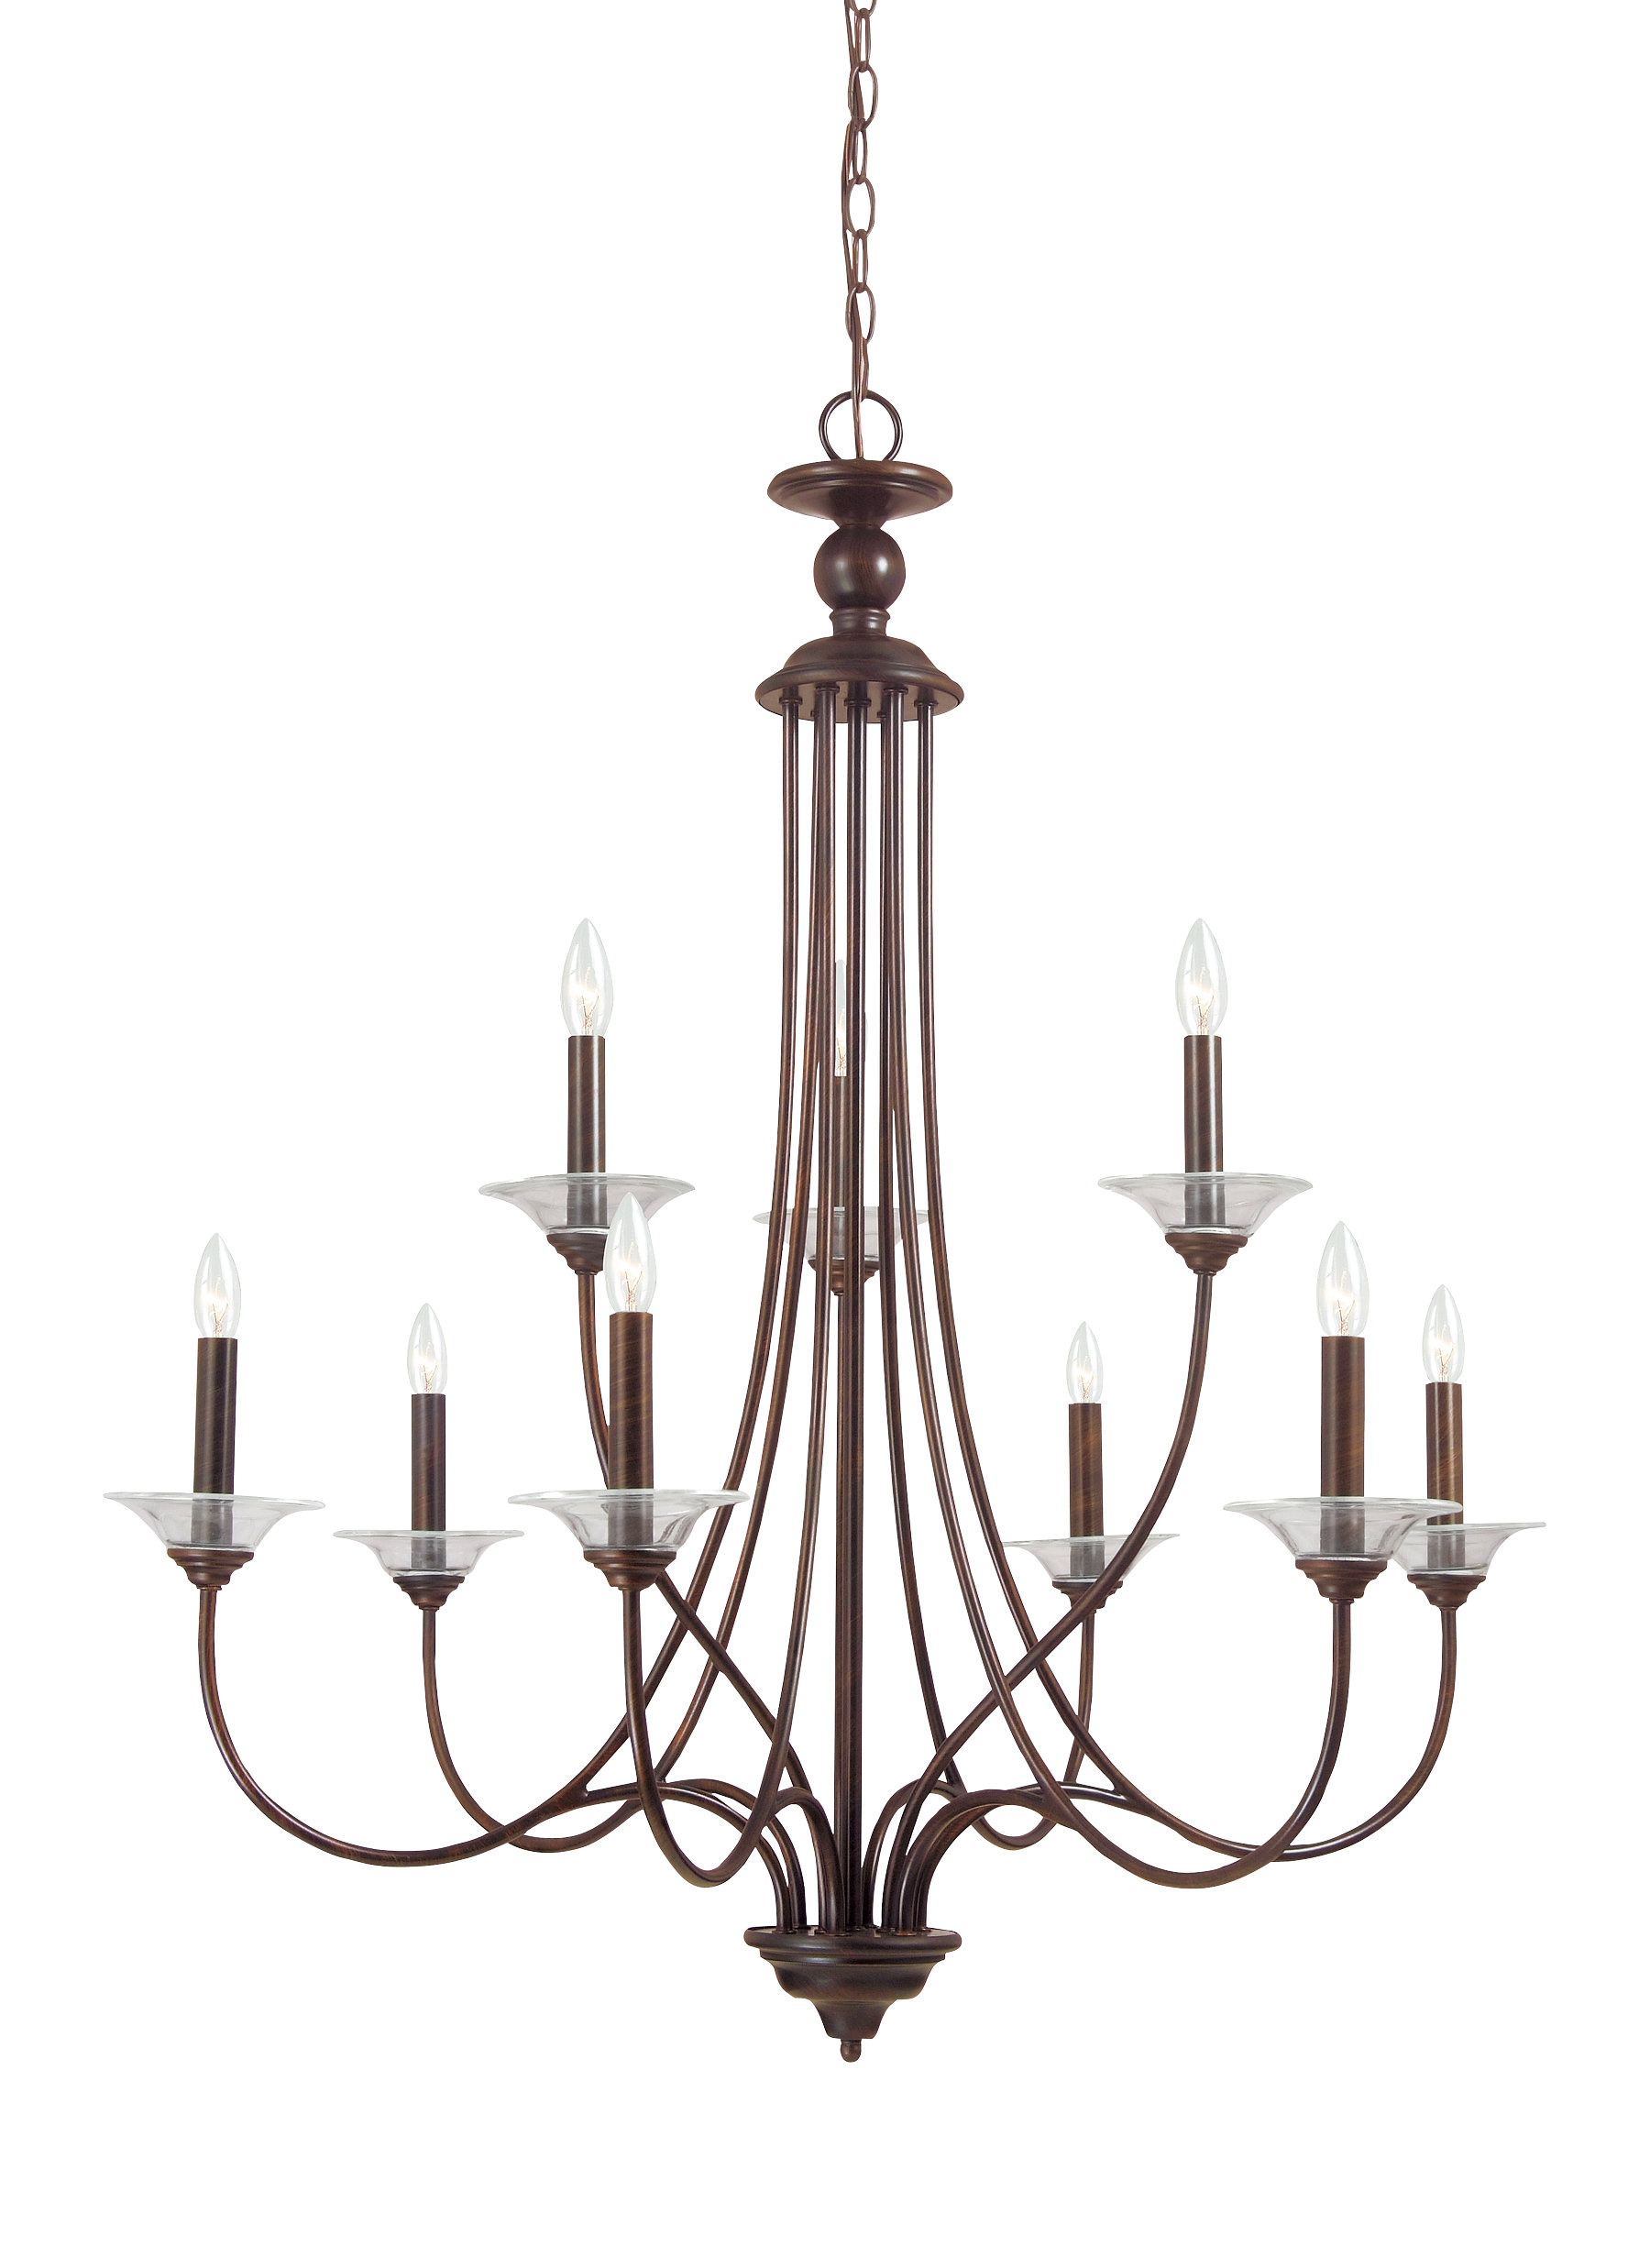 Kenedy 9 Light Candle Style Chandeliers Within Newest Barbro 9 Light Chandelier (View 5 of 25)